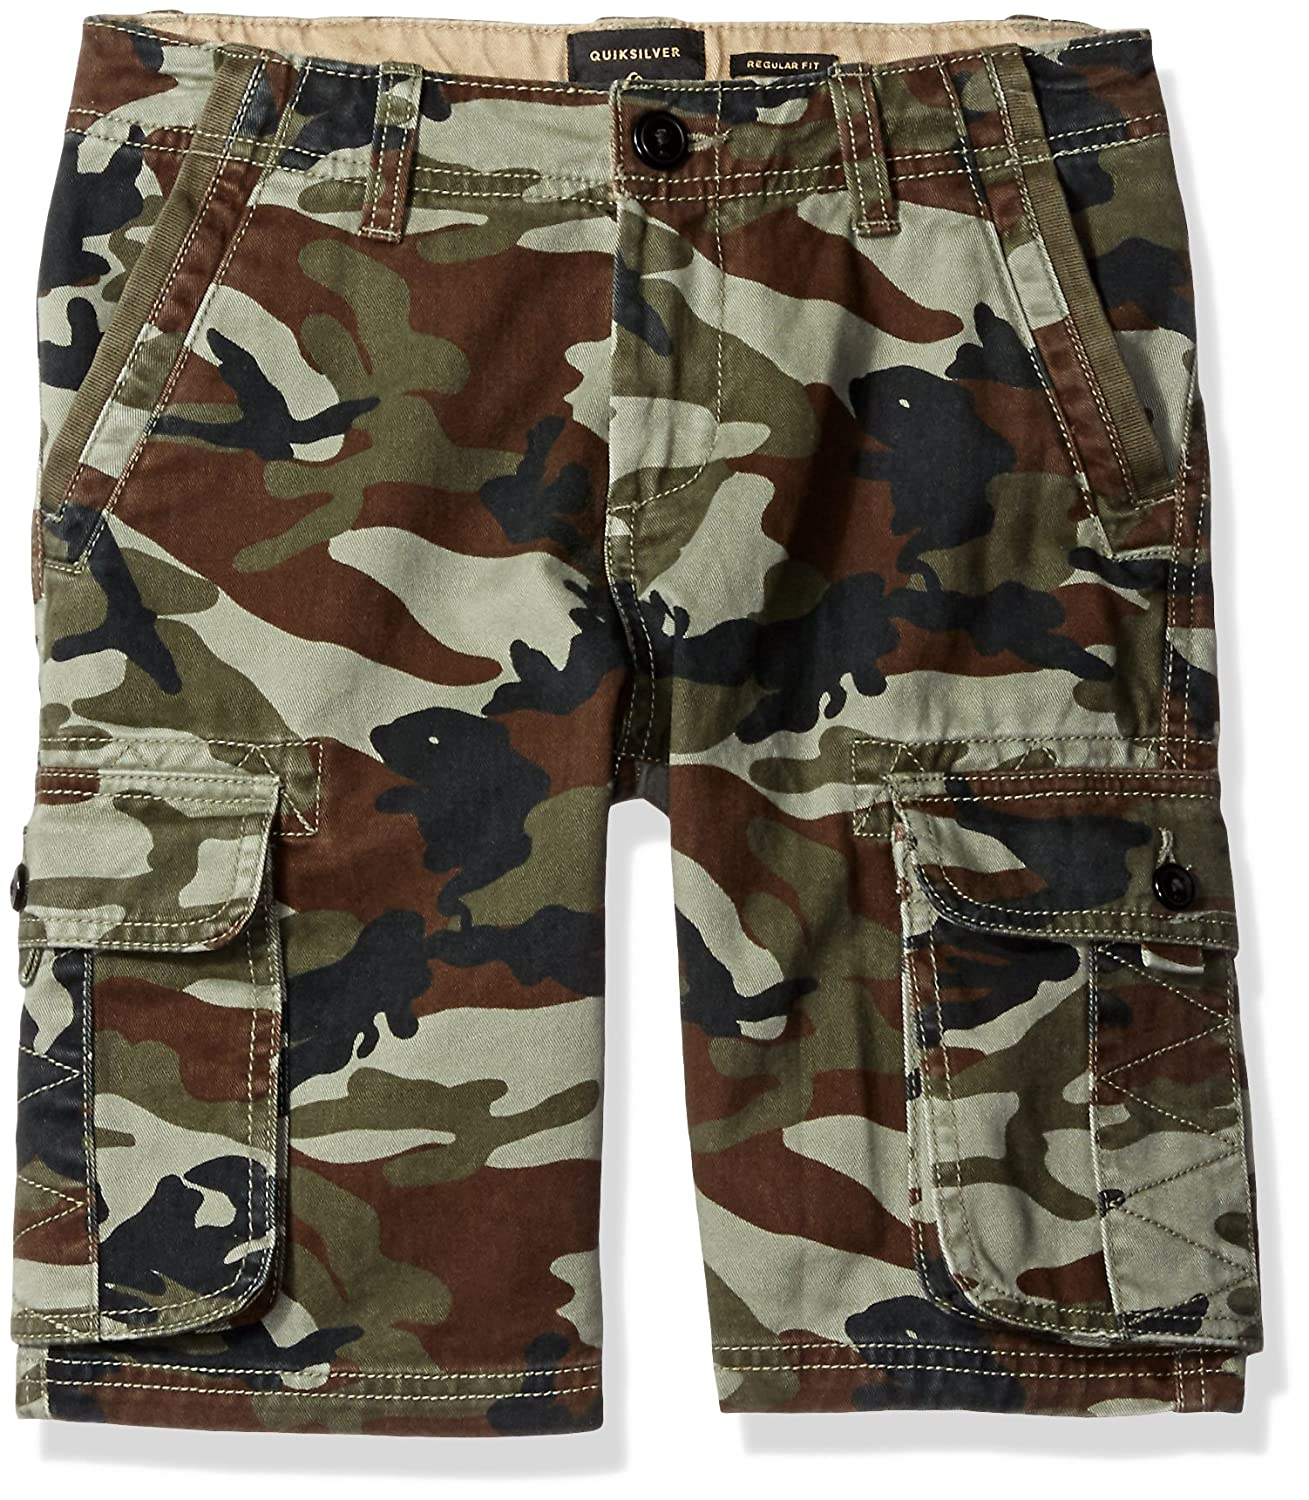 Quiksilver Boy's 8- Everyday Deluxe Cargo Shorts Size 26-12